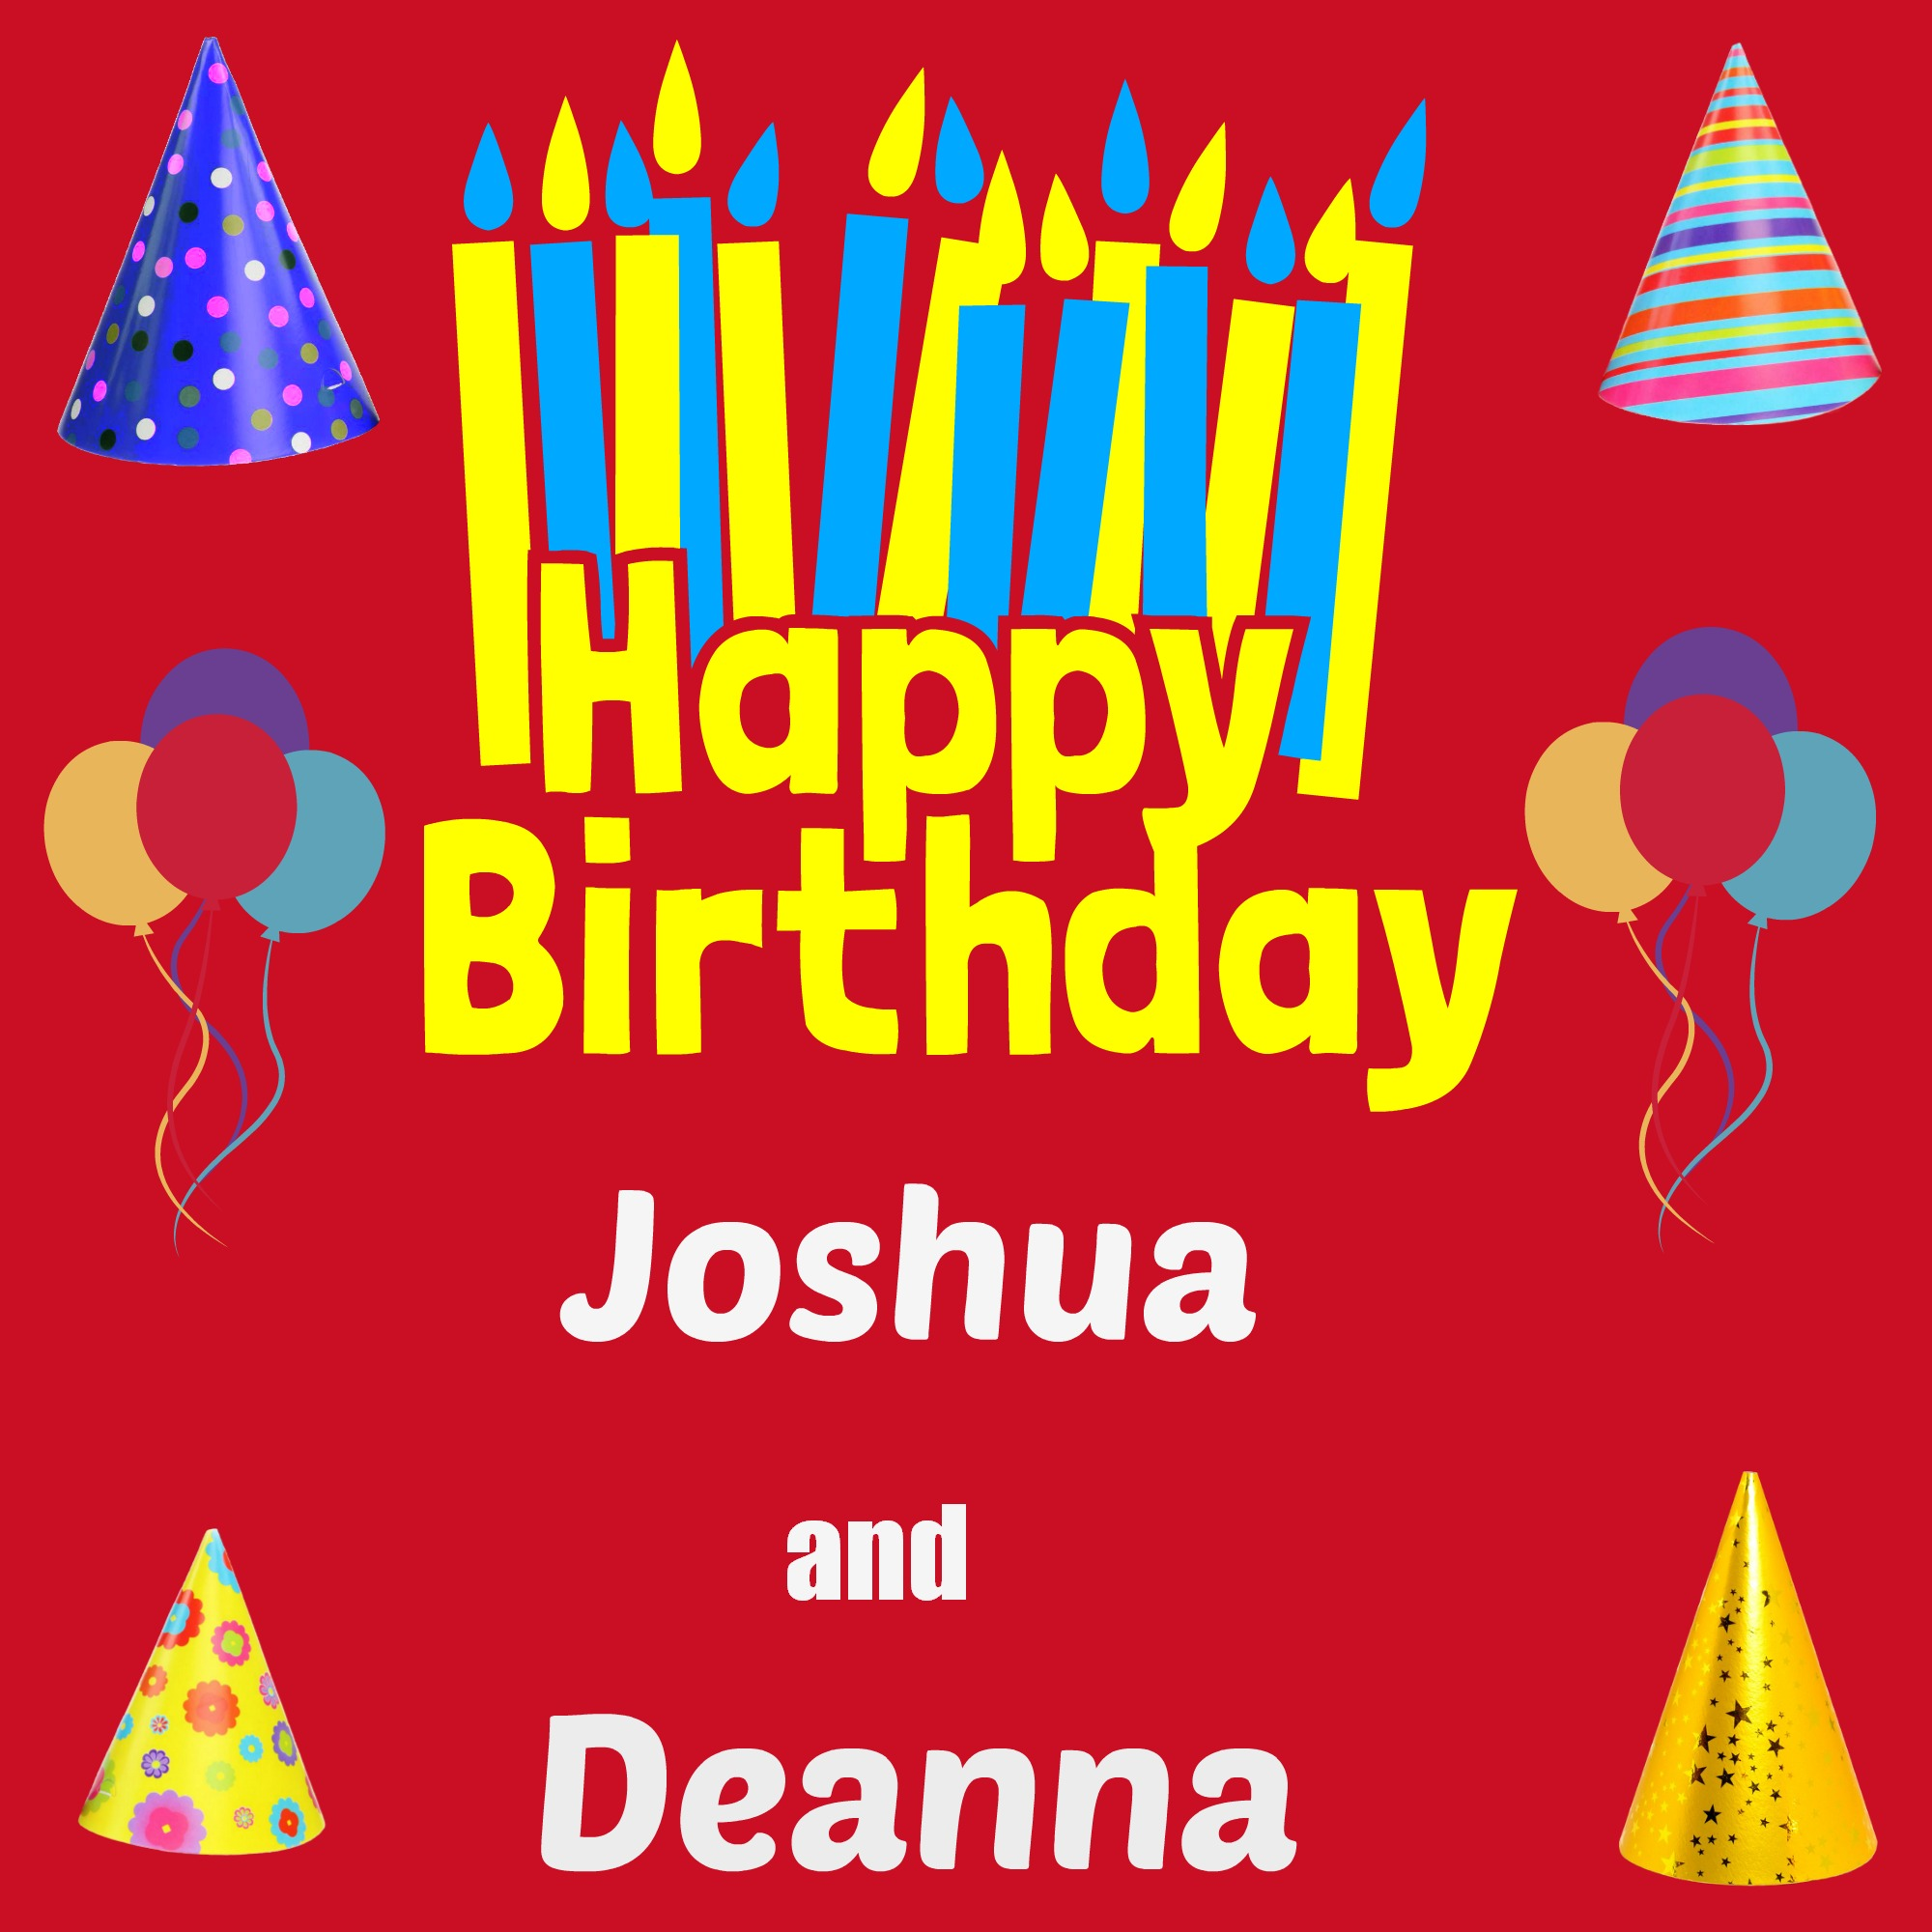 Happy Birthday Cake Joshua Images ~ Stacy sews and schools happy birthday joshua deanna